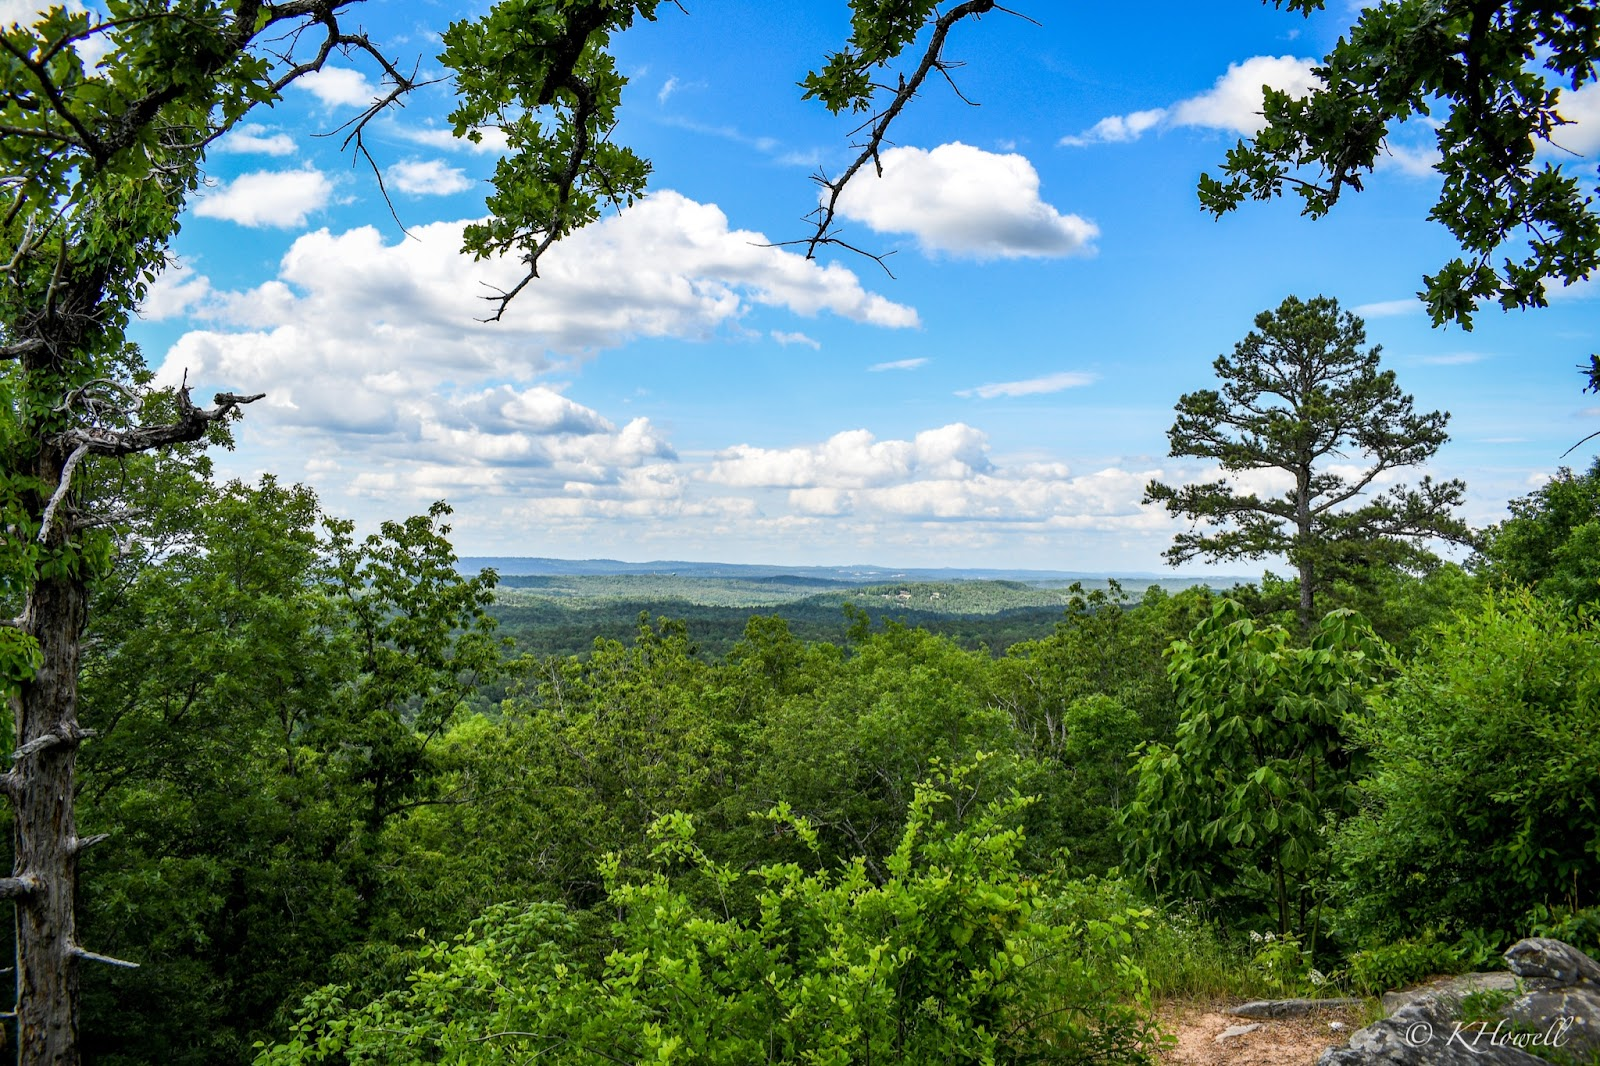 Oak Mountain State Park in Pelham, Alabama - The Howell Group